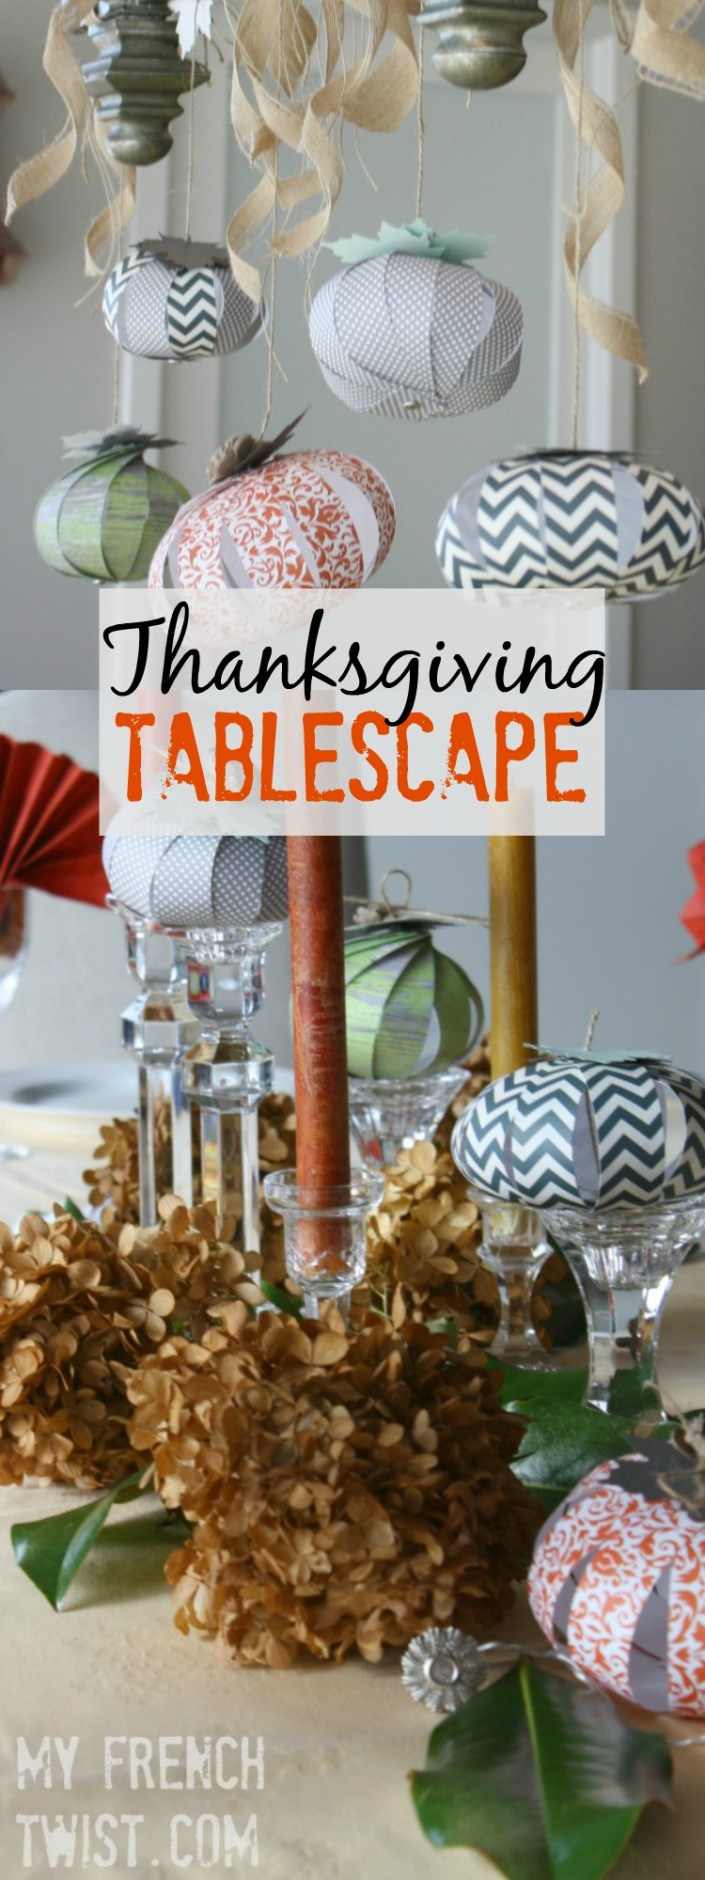 thanksgiving tablescape - myfrenchtwist.com